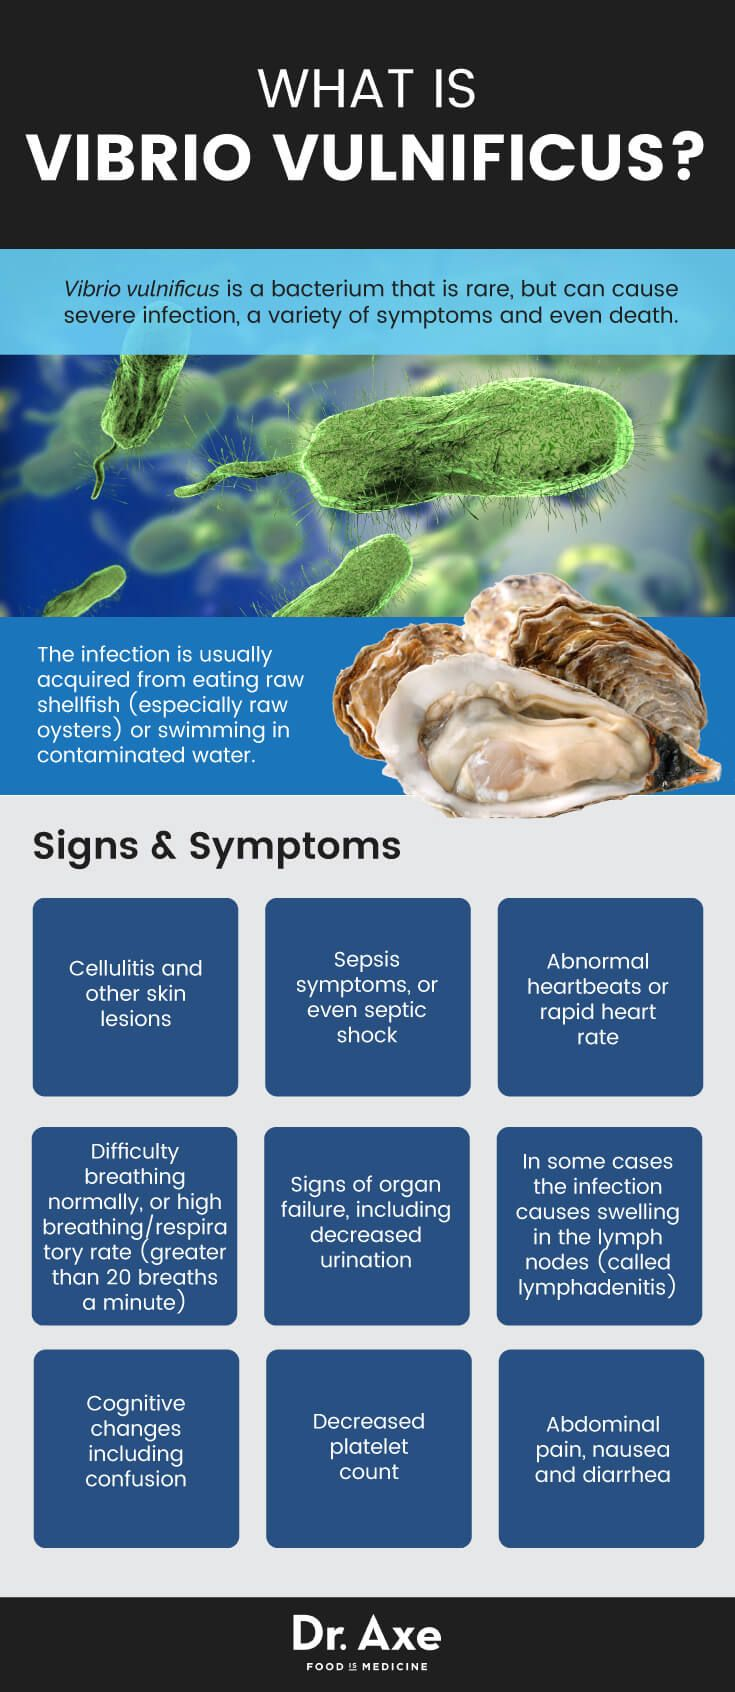 What is vibrio vulnificus- Dr. Axe